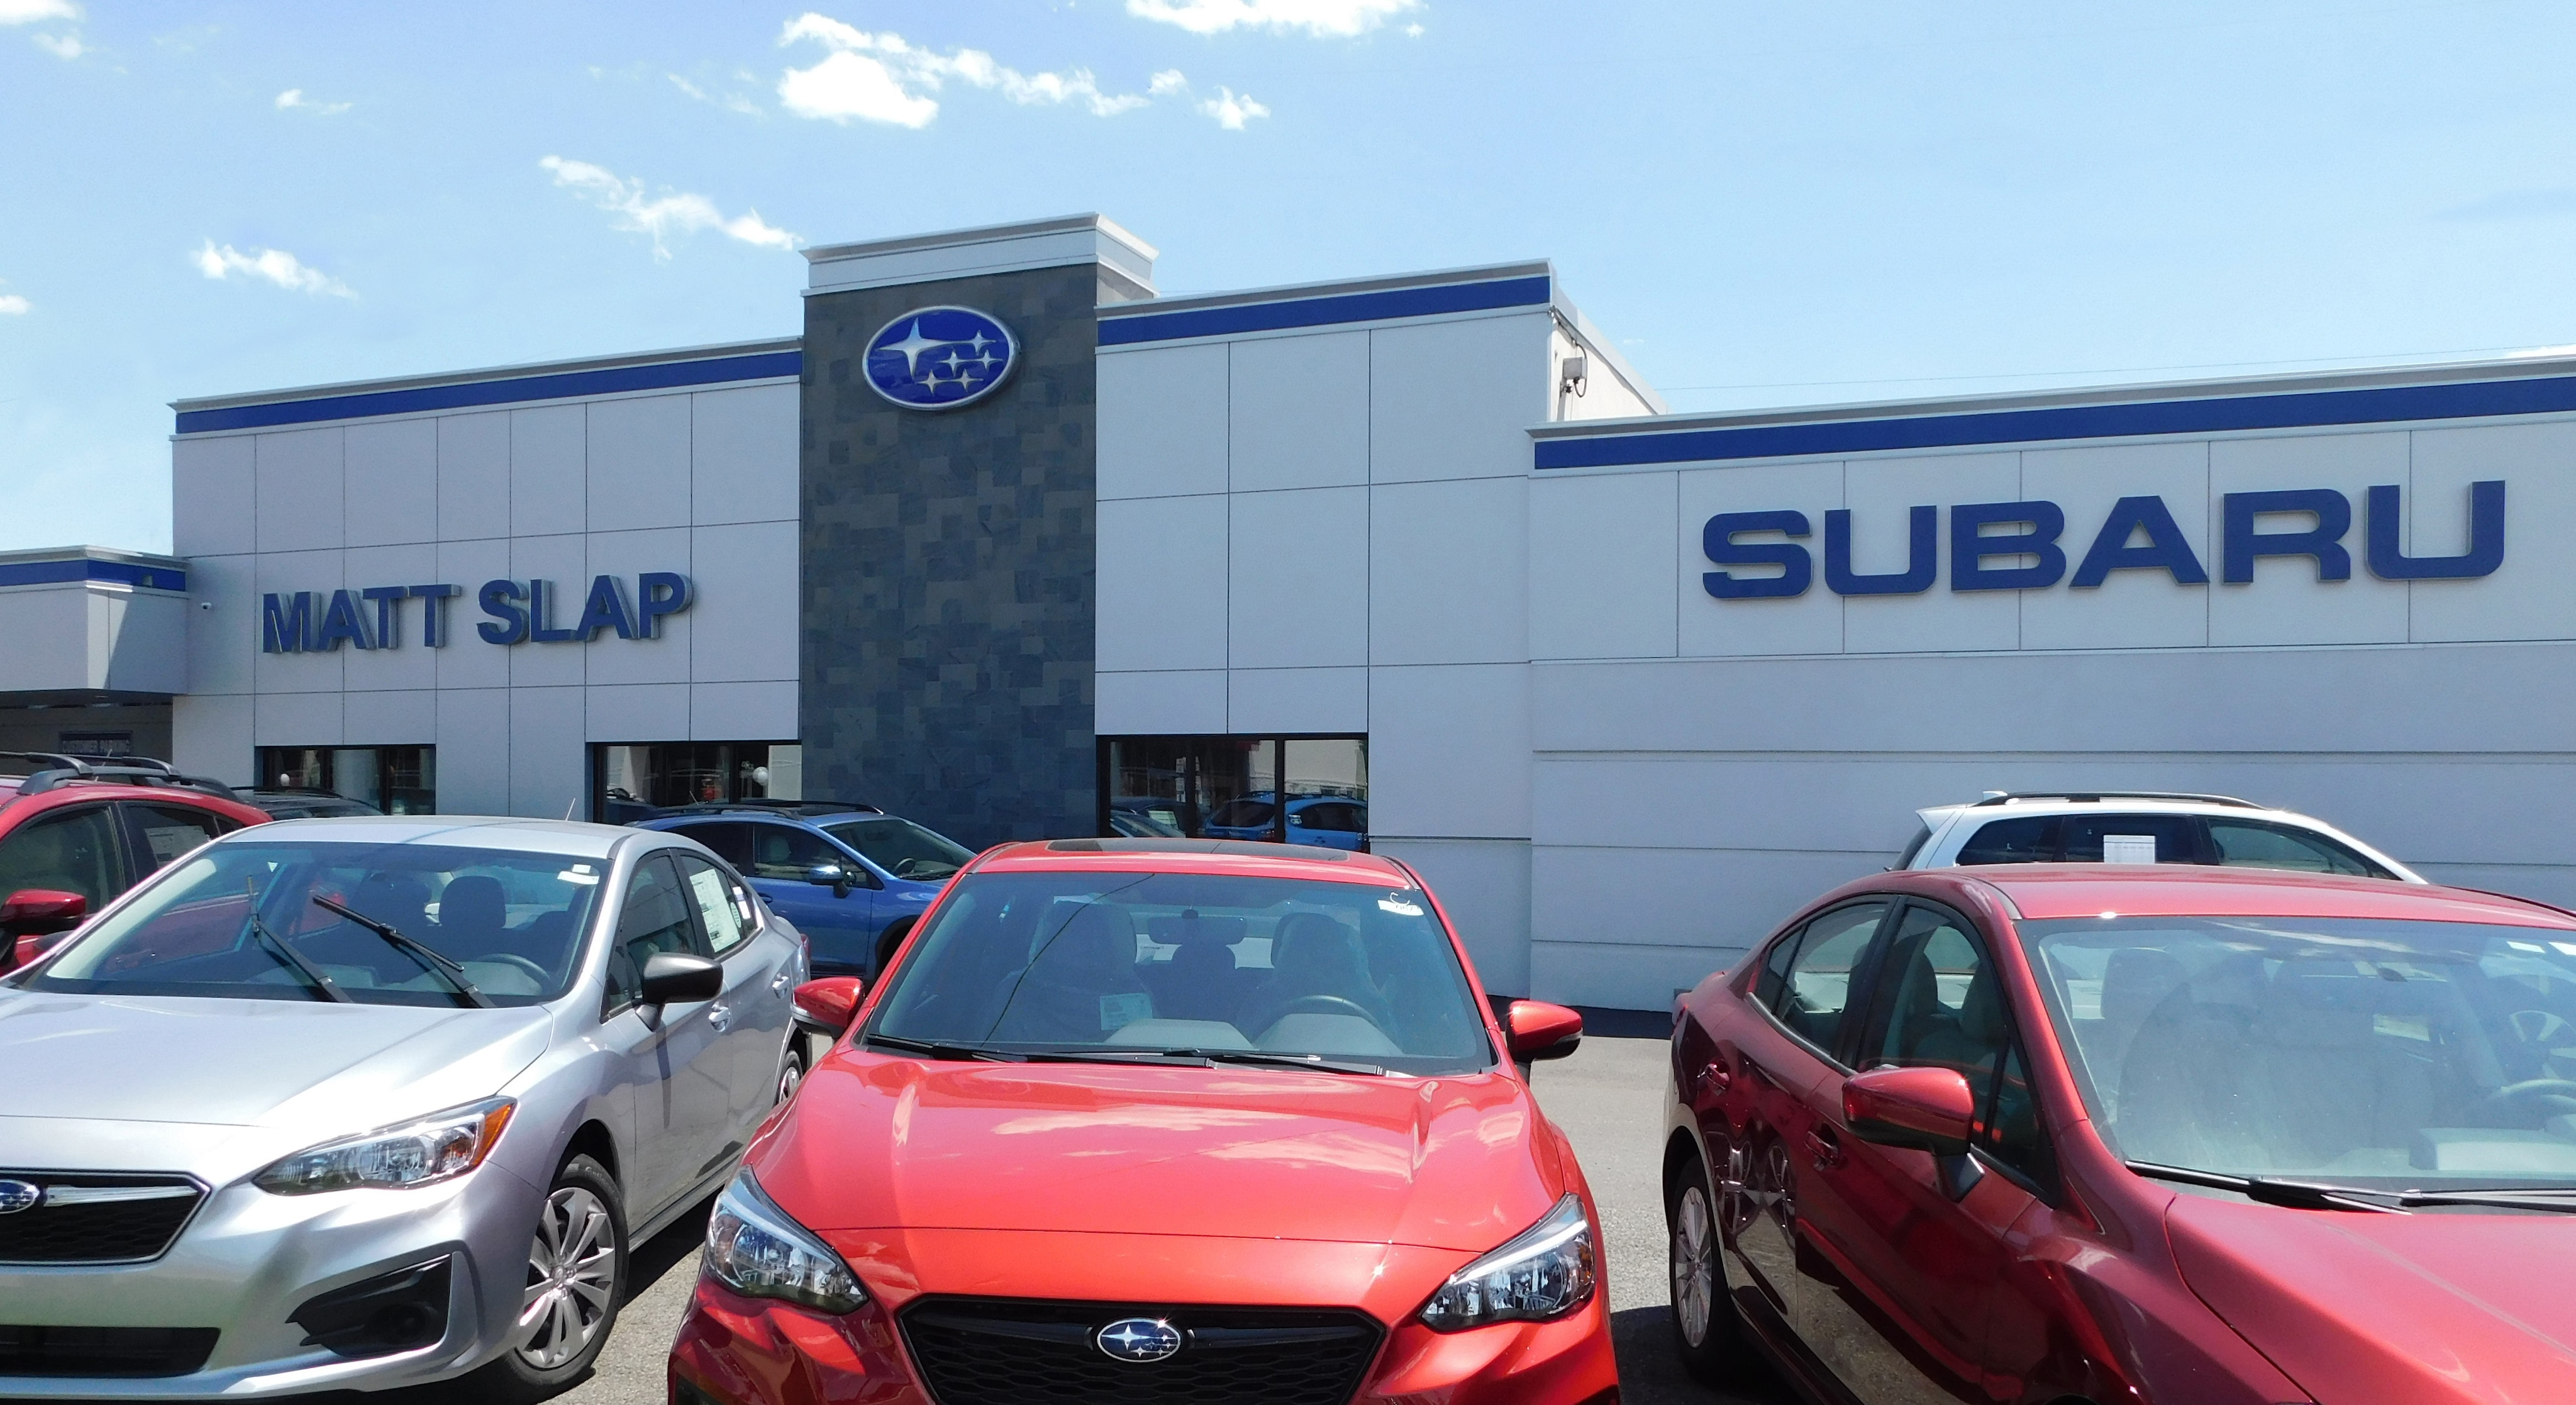 The new 2017 and 2018 subaru model line up available in newark de